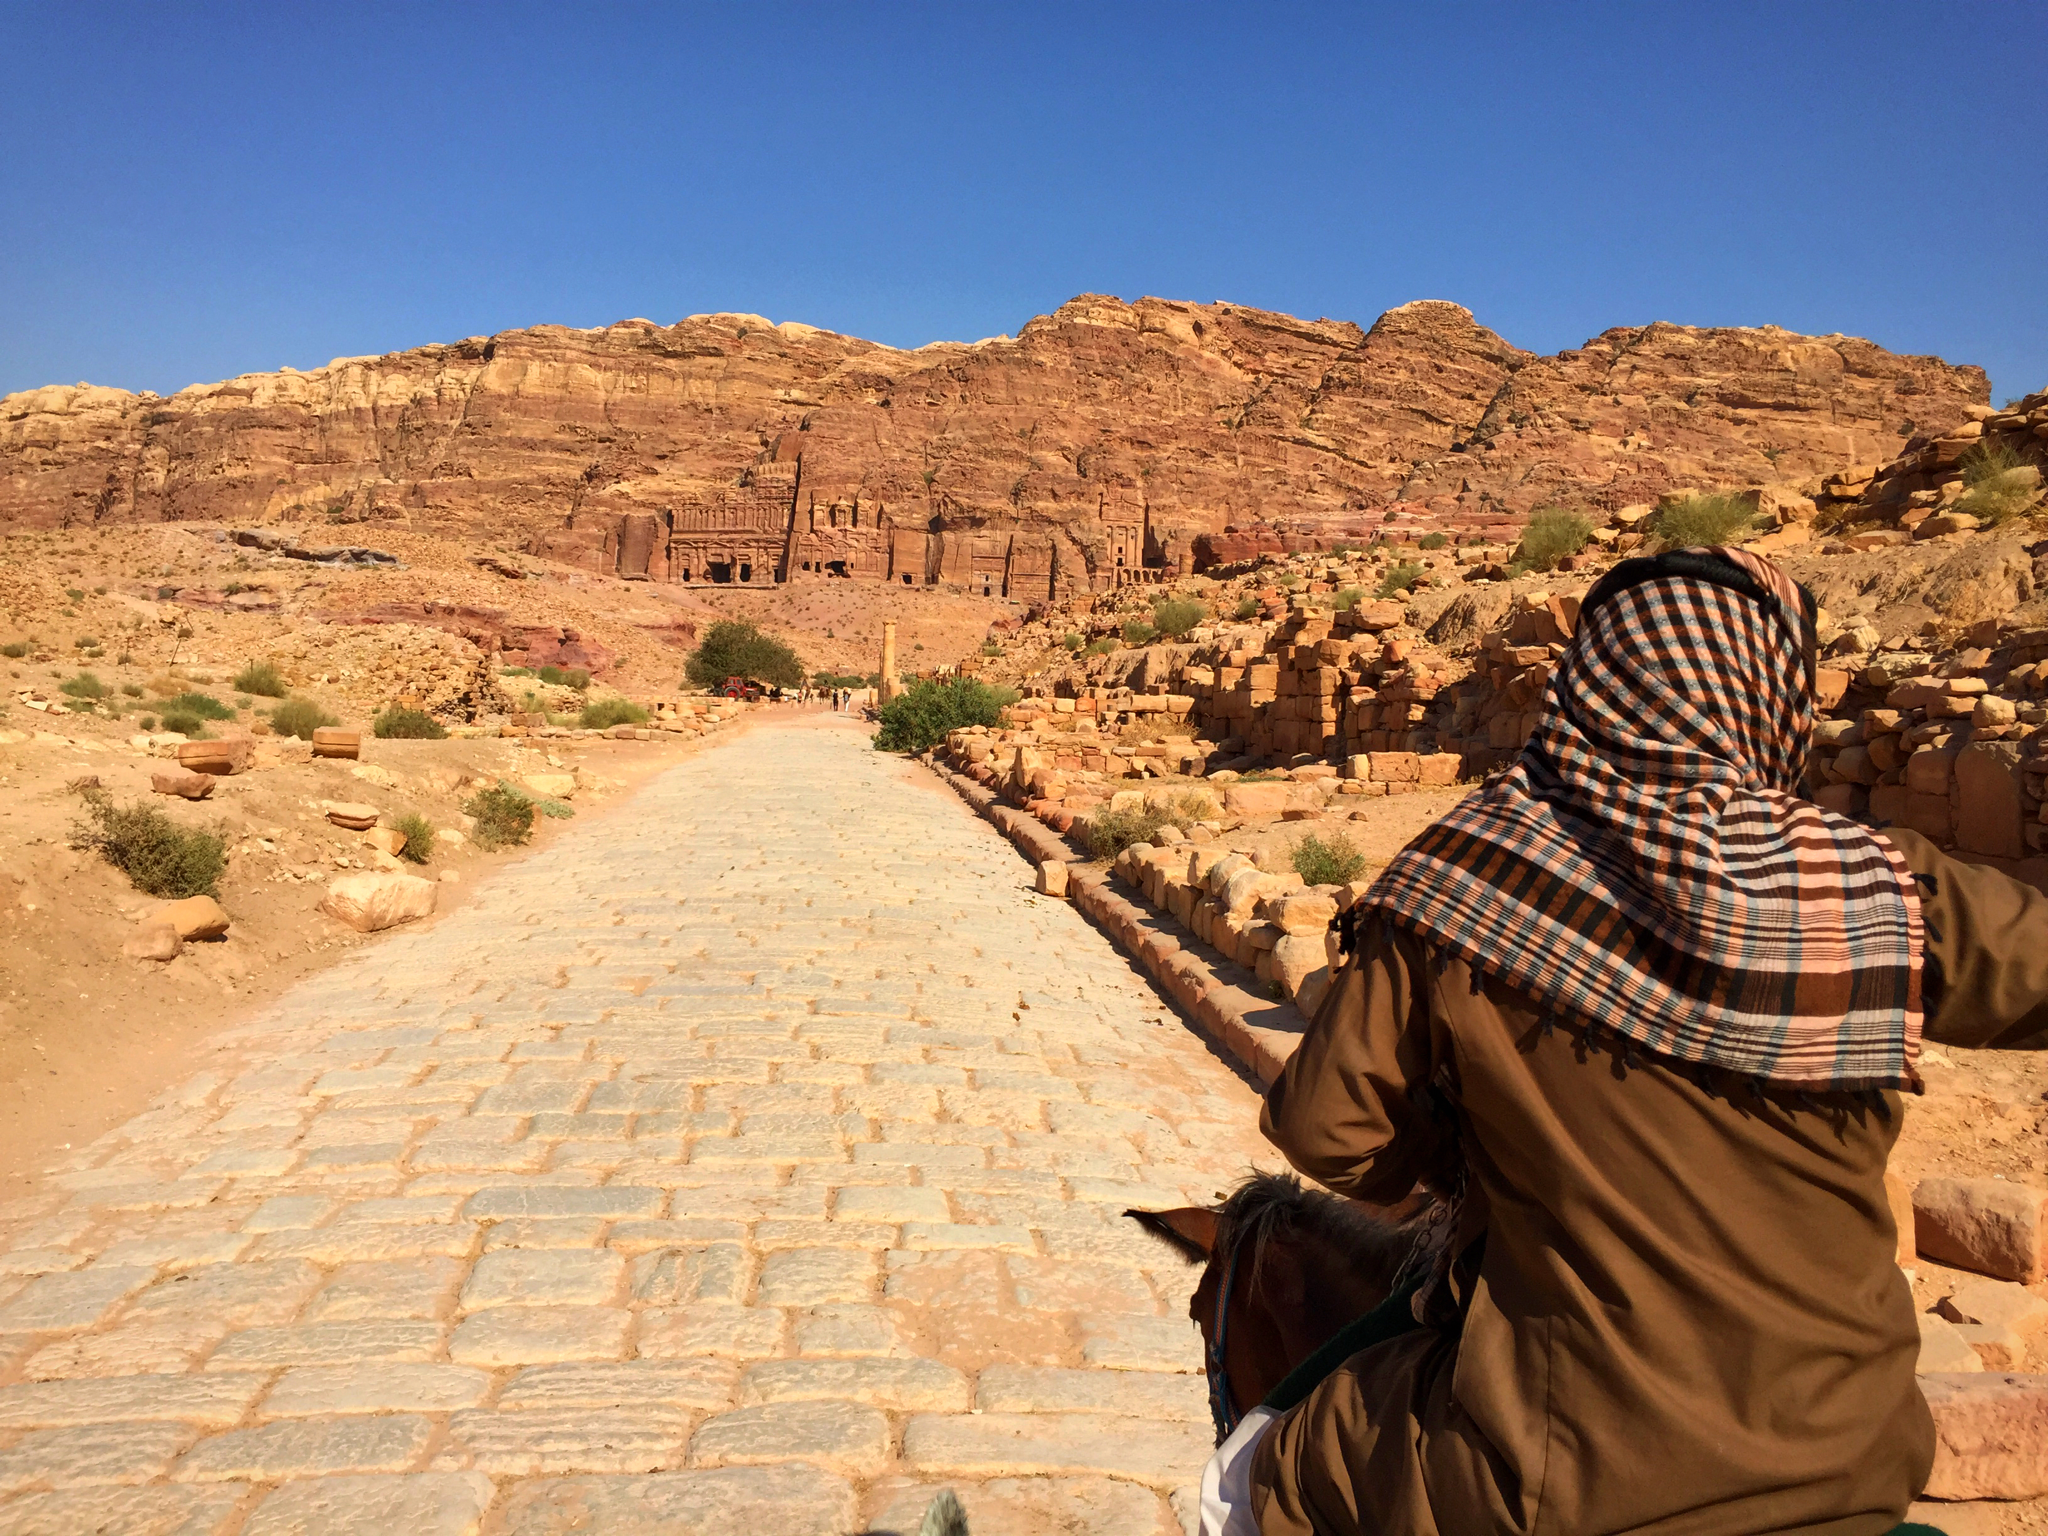 Bedouin guide leading along the Roman colonnade.